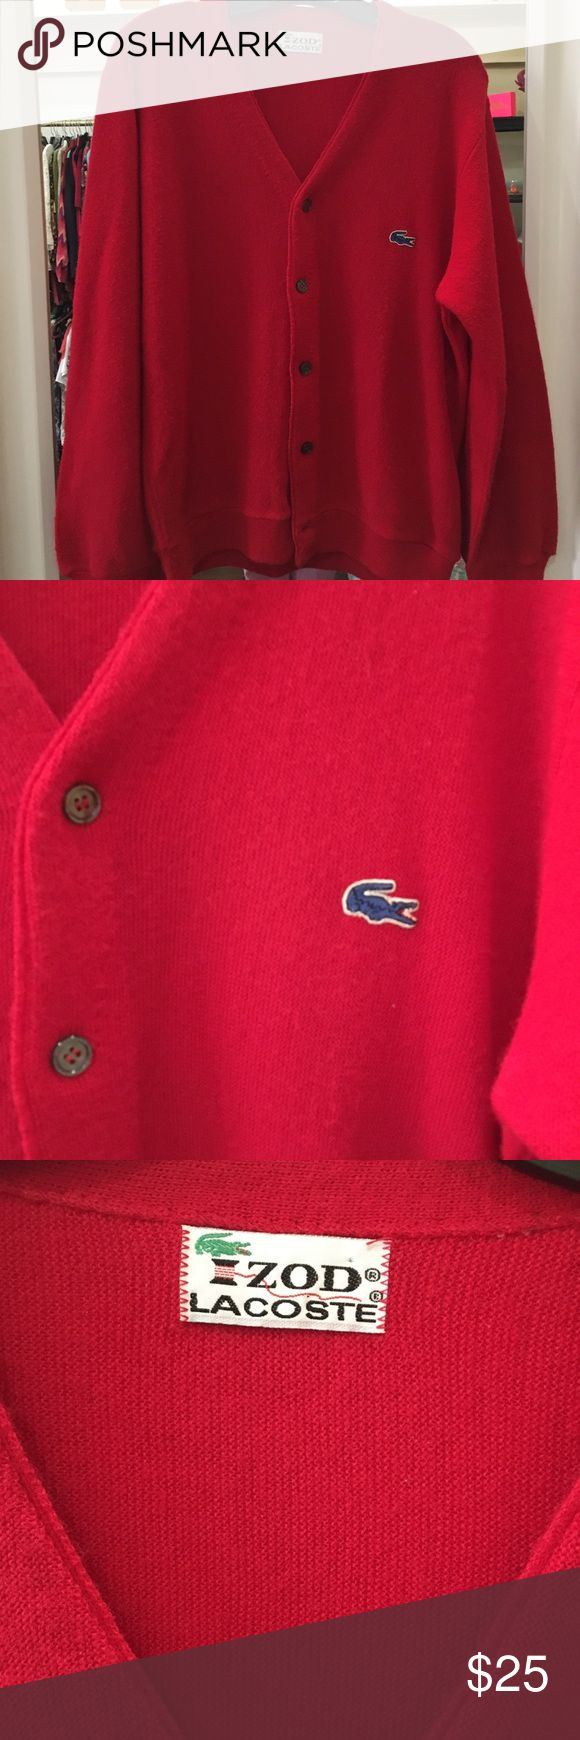 Vintage Red Lacoste Cardigan size Large Fabulous vintage Lacoste Izod Cardigan size Large. Lacoste Sweaters Cardigans